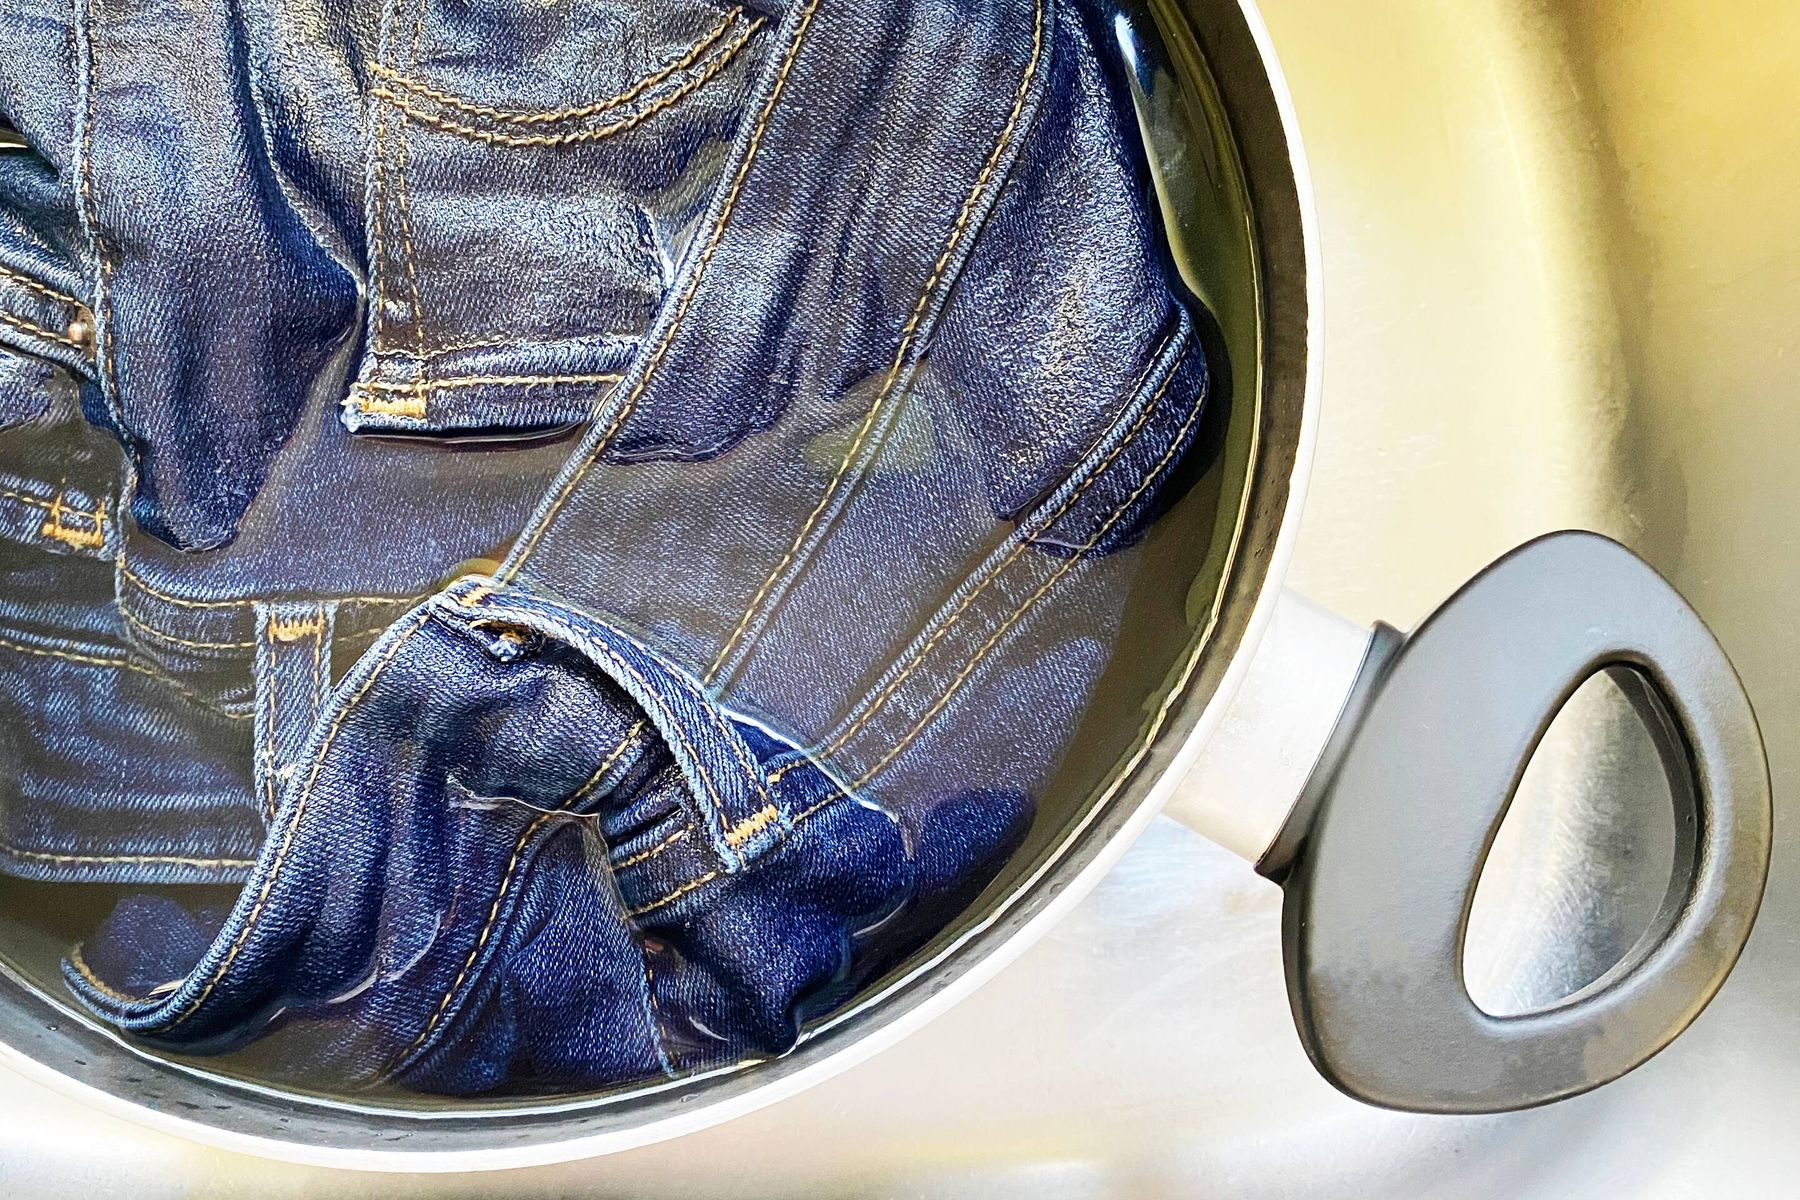 A pair of jeans in a pan of water